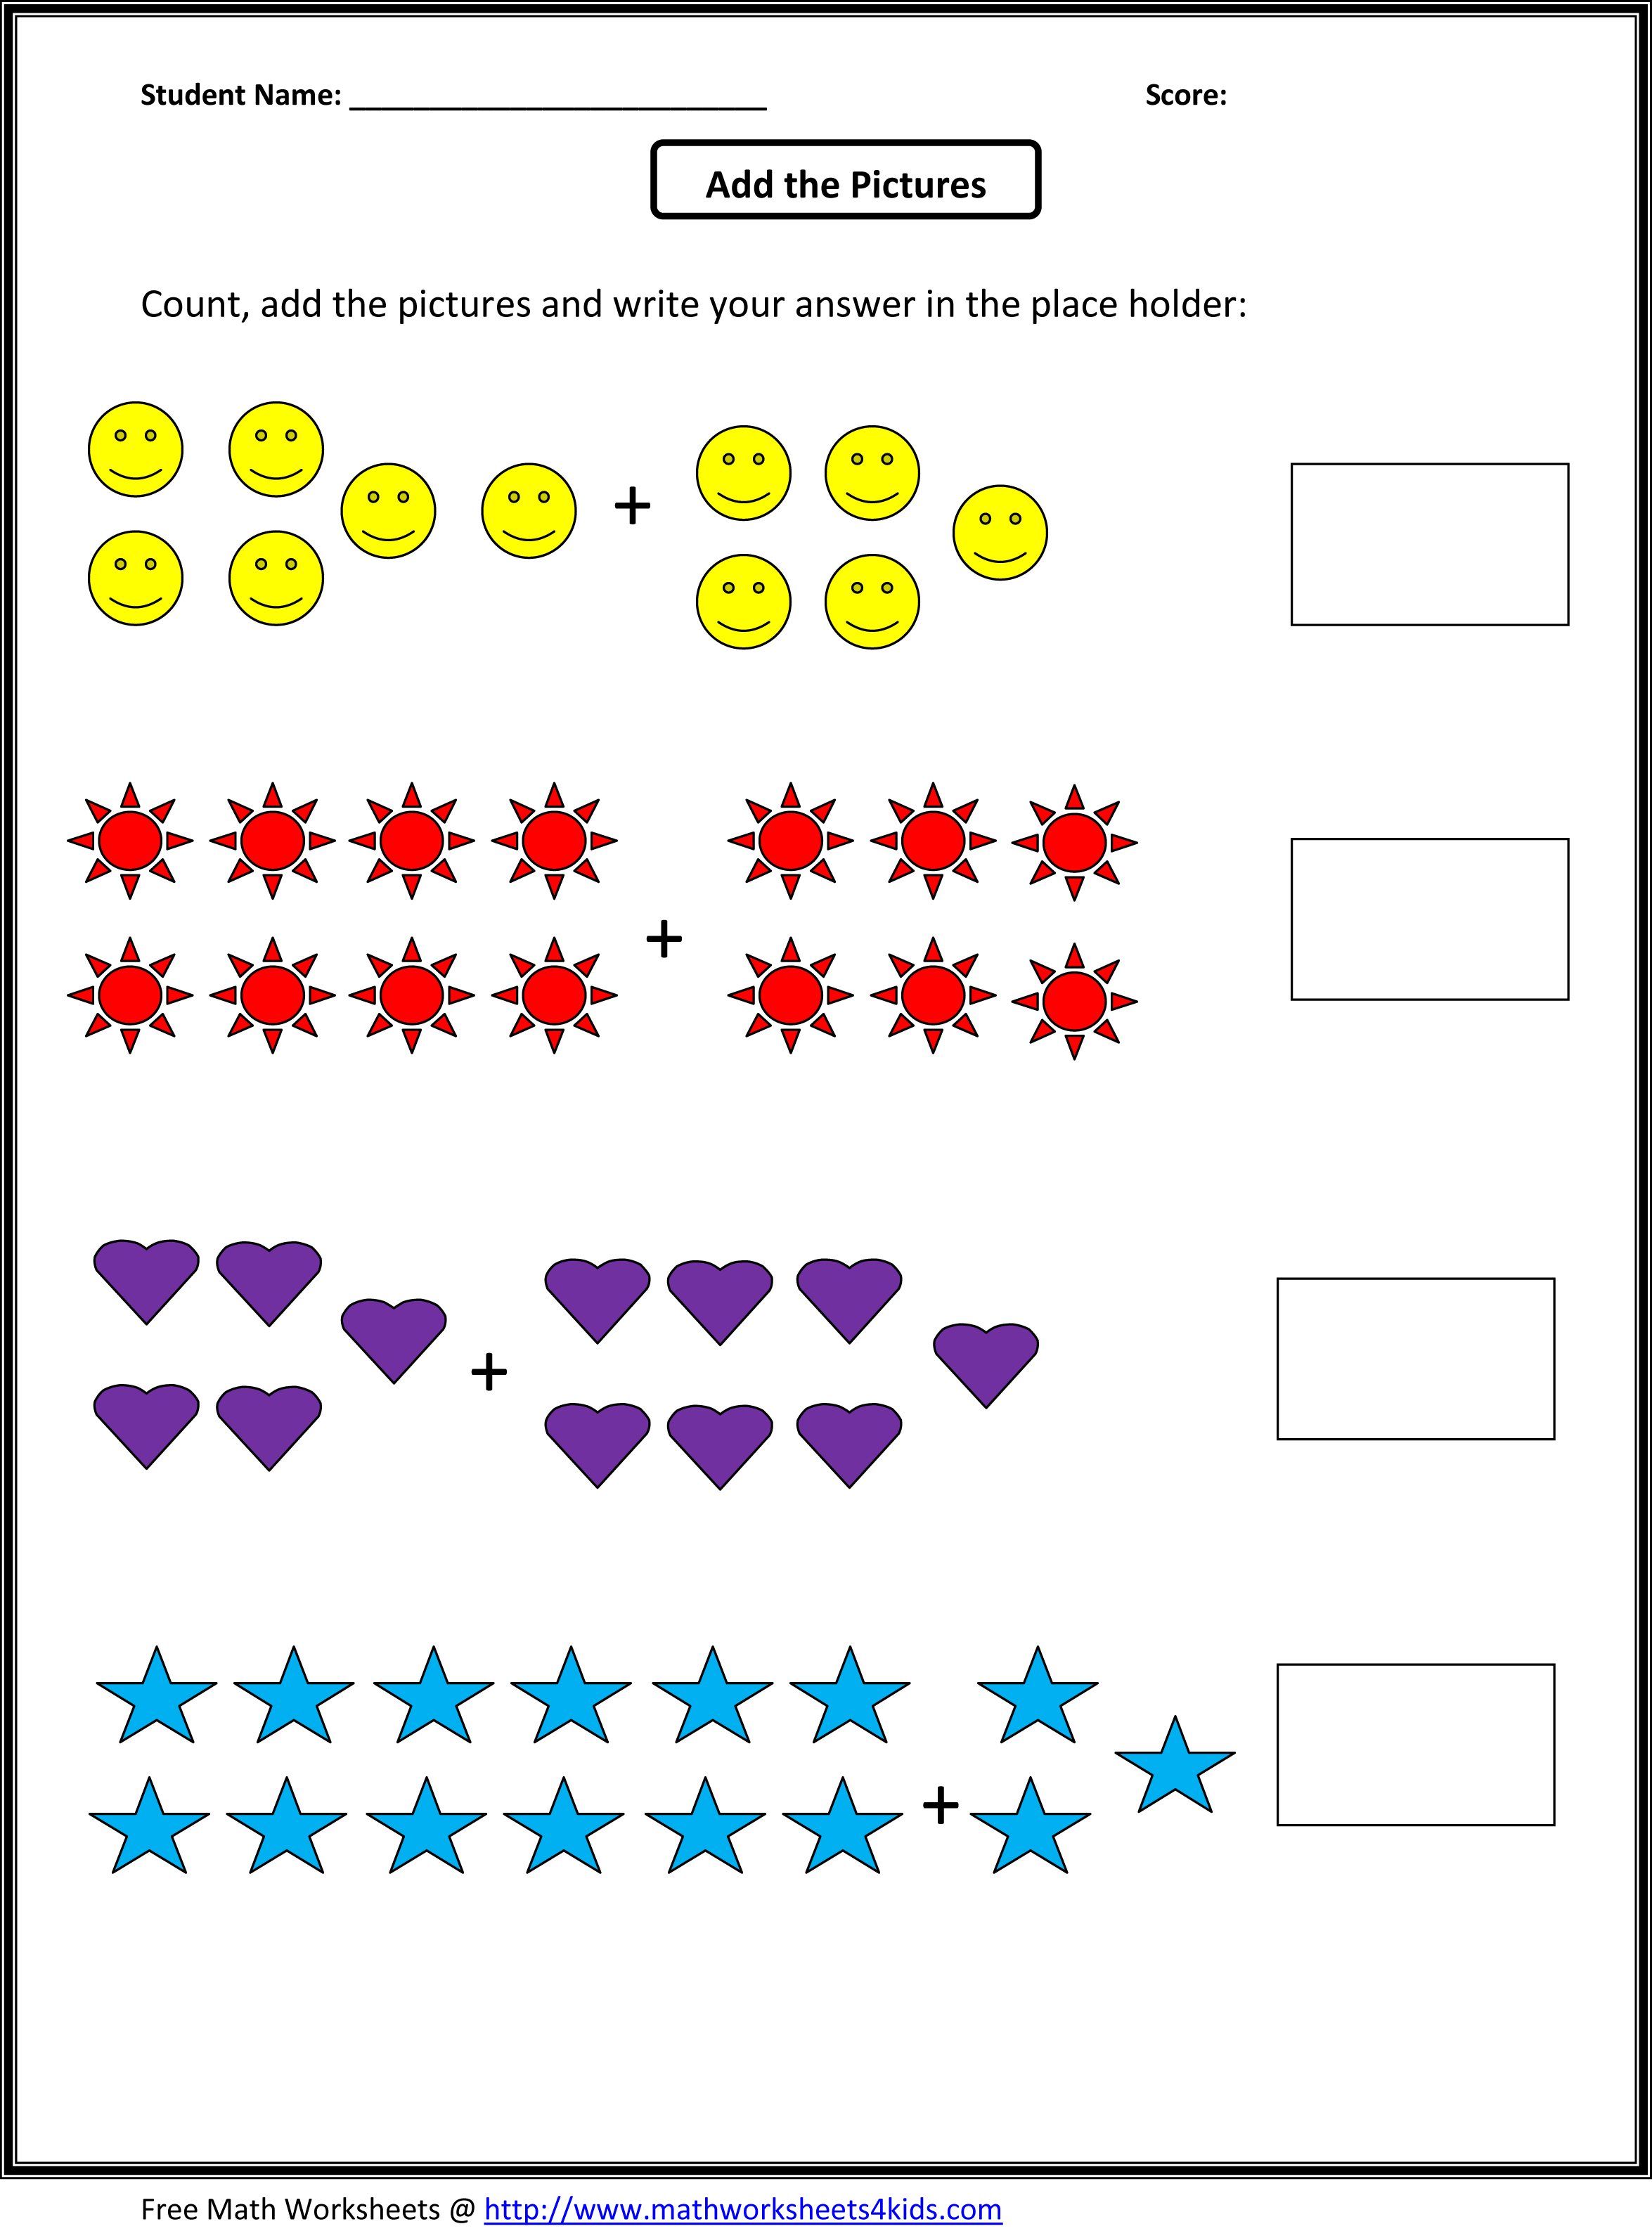 Weirdmailus  Pleasing Grade  Maths Worksheet  Reocurent With Entrancing Math Worksheets For St Grade Free  Reocurent With Comely Self Reliance Worksheet Also Diwali Worksheets In Addition Vba Print Worksheet And Preschool Worksheets Colors As Well As Dna Worksheets Middle School Additionally Fossil Fuels Worksheets From Reocurentcom With Weirdmailus  Entrancing Grade  Maths Worksheet  Reocurent With Comely Math Worksheets For St Grade Free  Reocurent And Pleasing Self Reliance Worksheet Also Diwali Worksheets In Addition Vba Print Worksheet From Reocurentcom